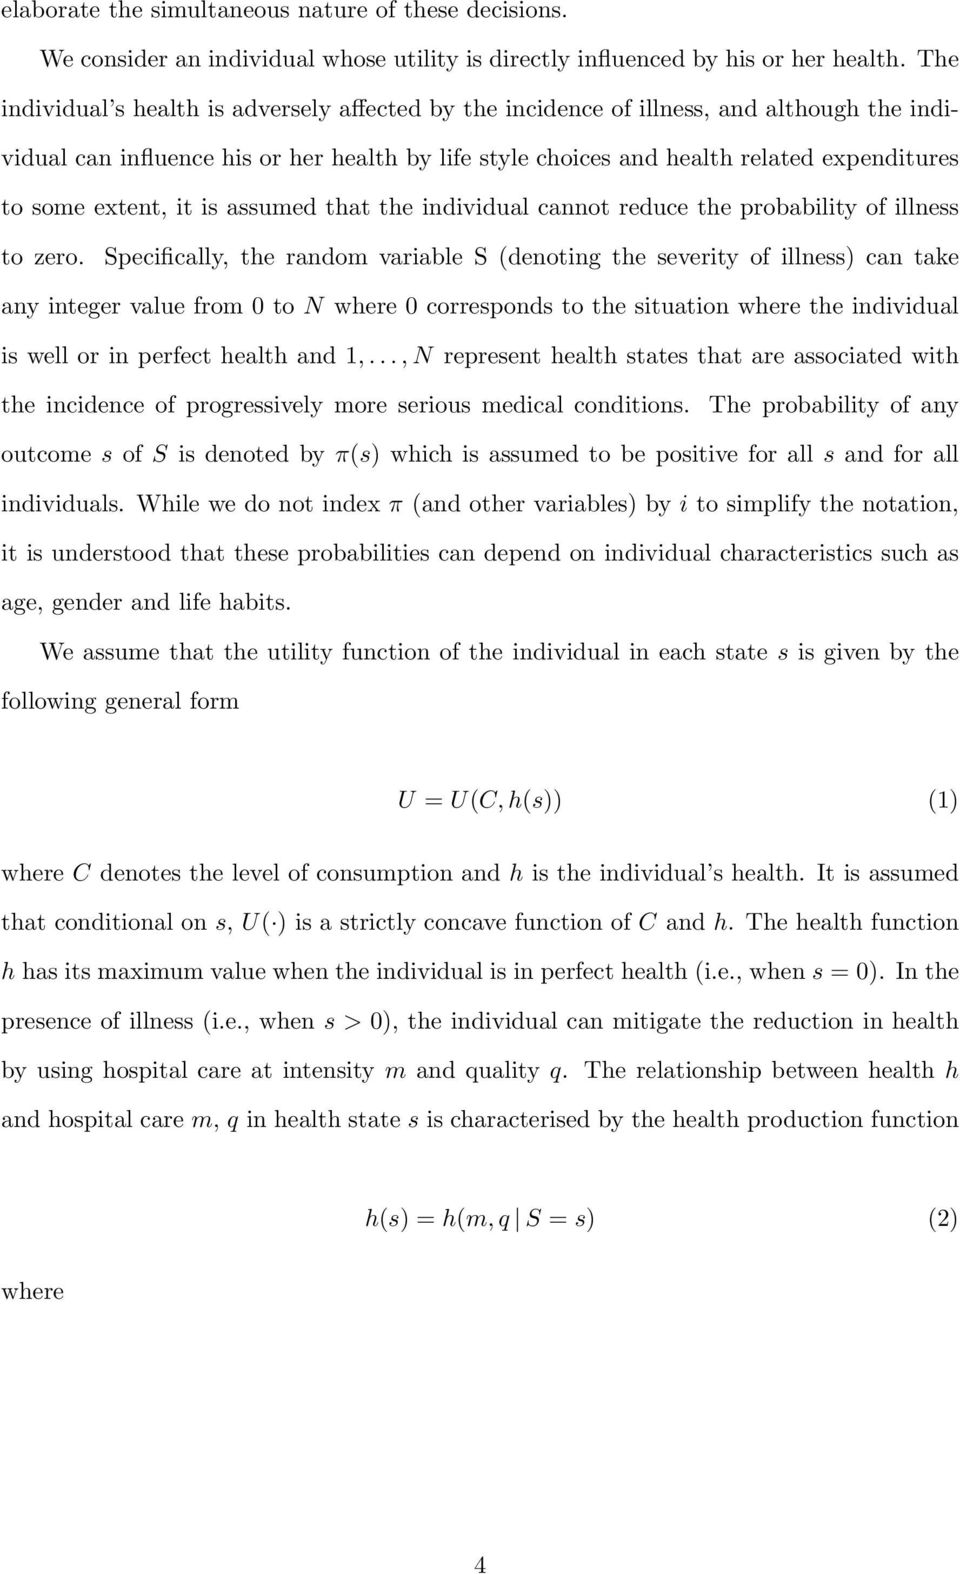 extent, it is assumed that the individual cannot reduce the probability of illness to zero.